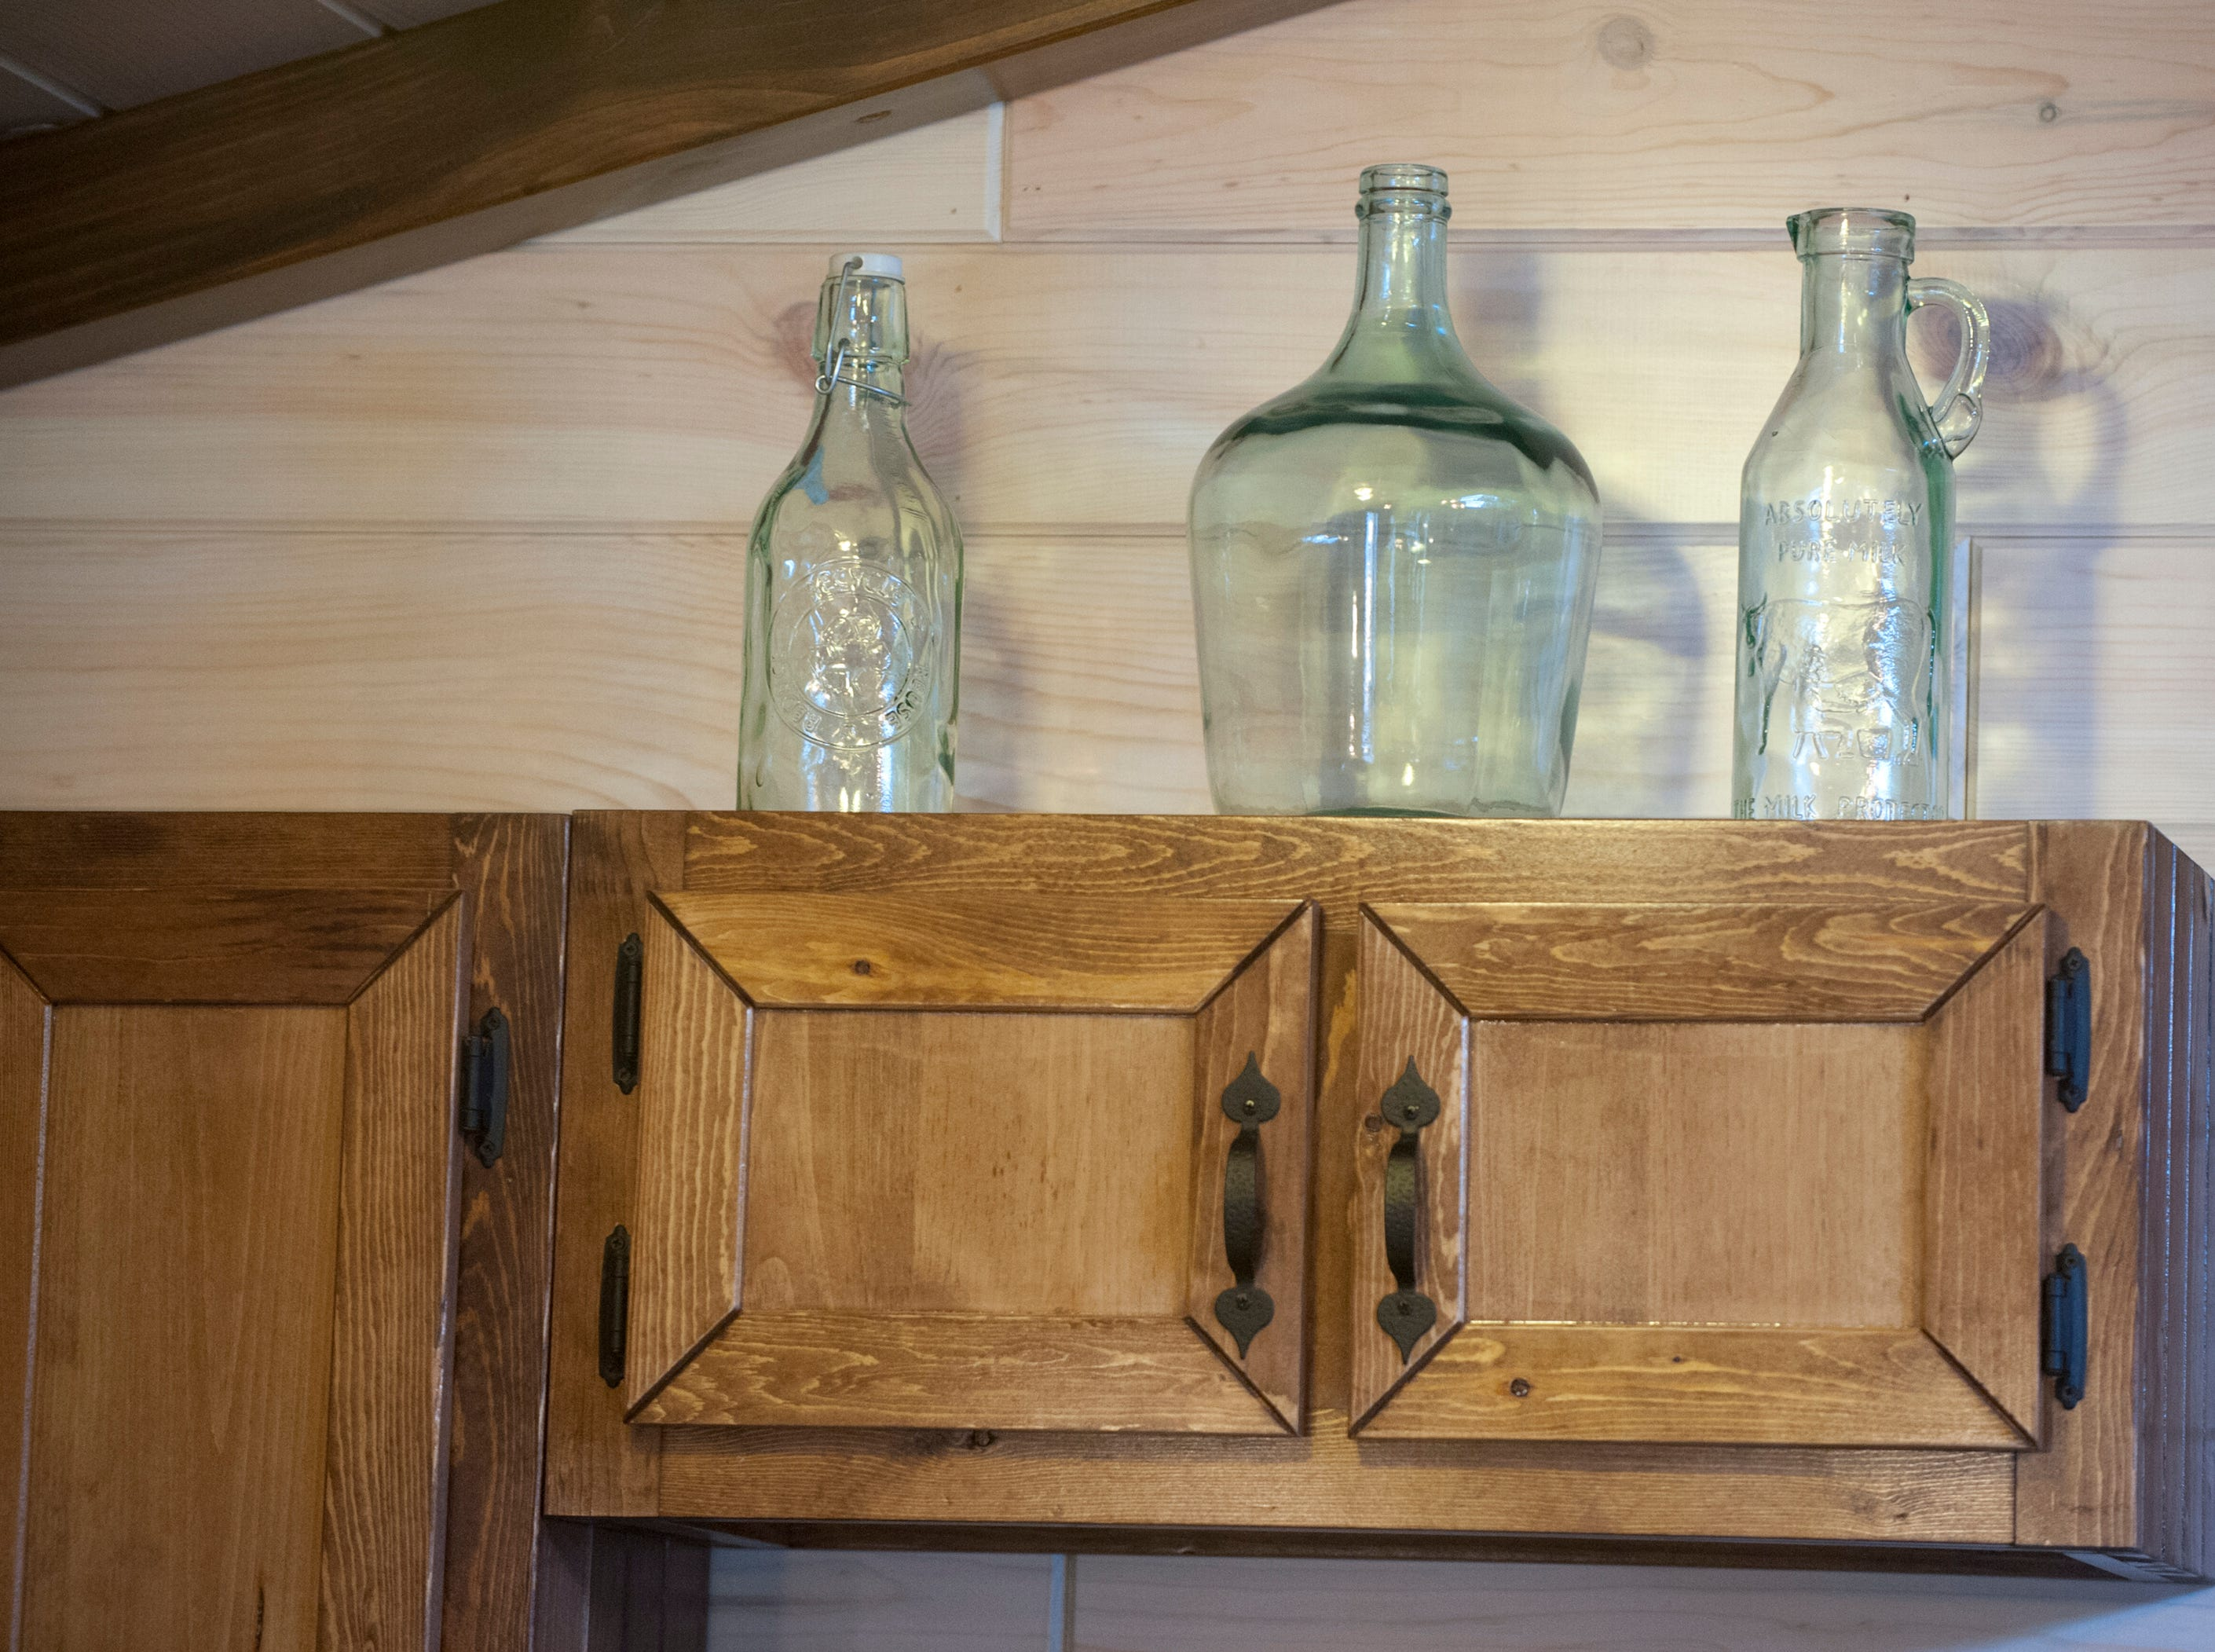 Glass bottles decorate the top of the kitchen cabinets.